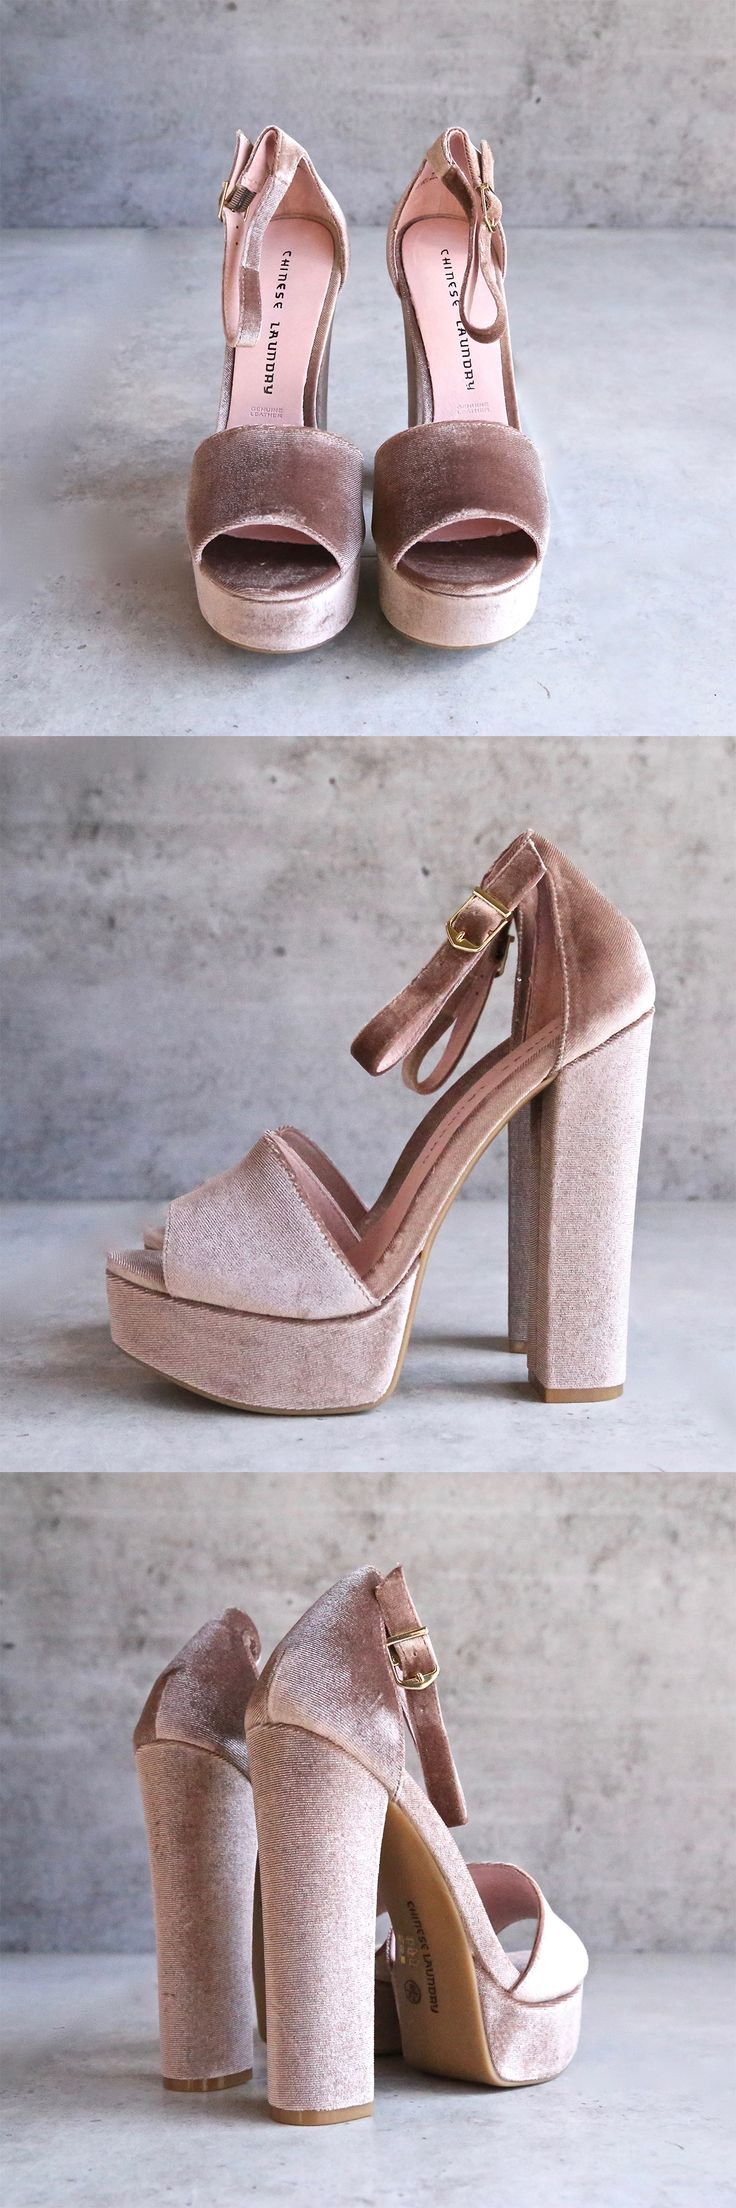 - Captivate an audience in the stunning Chinese Laundry™ Ace platform heel! - Velvet upper. - Ankle strap with buckle closure. - Open-toe silhouette. - Synthetic lining. - Lightly padded footbed. - Wr